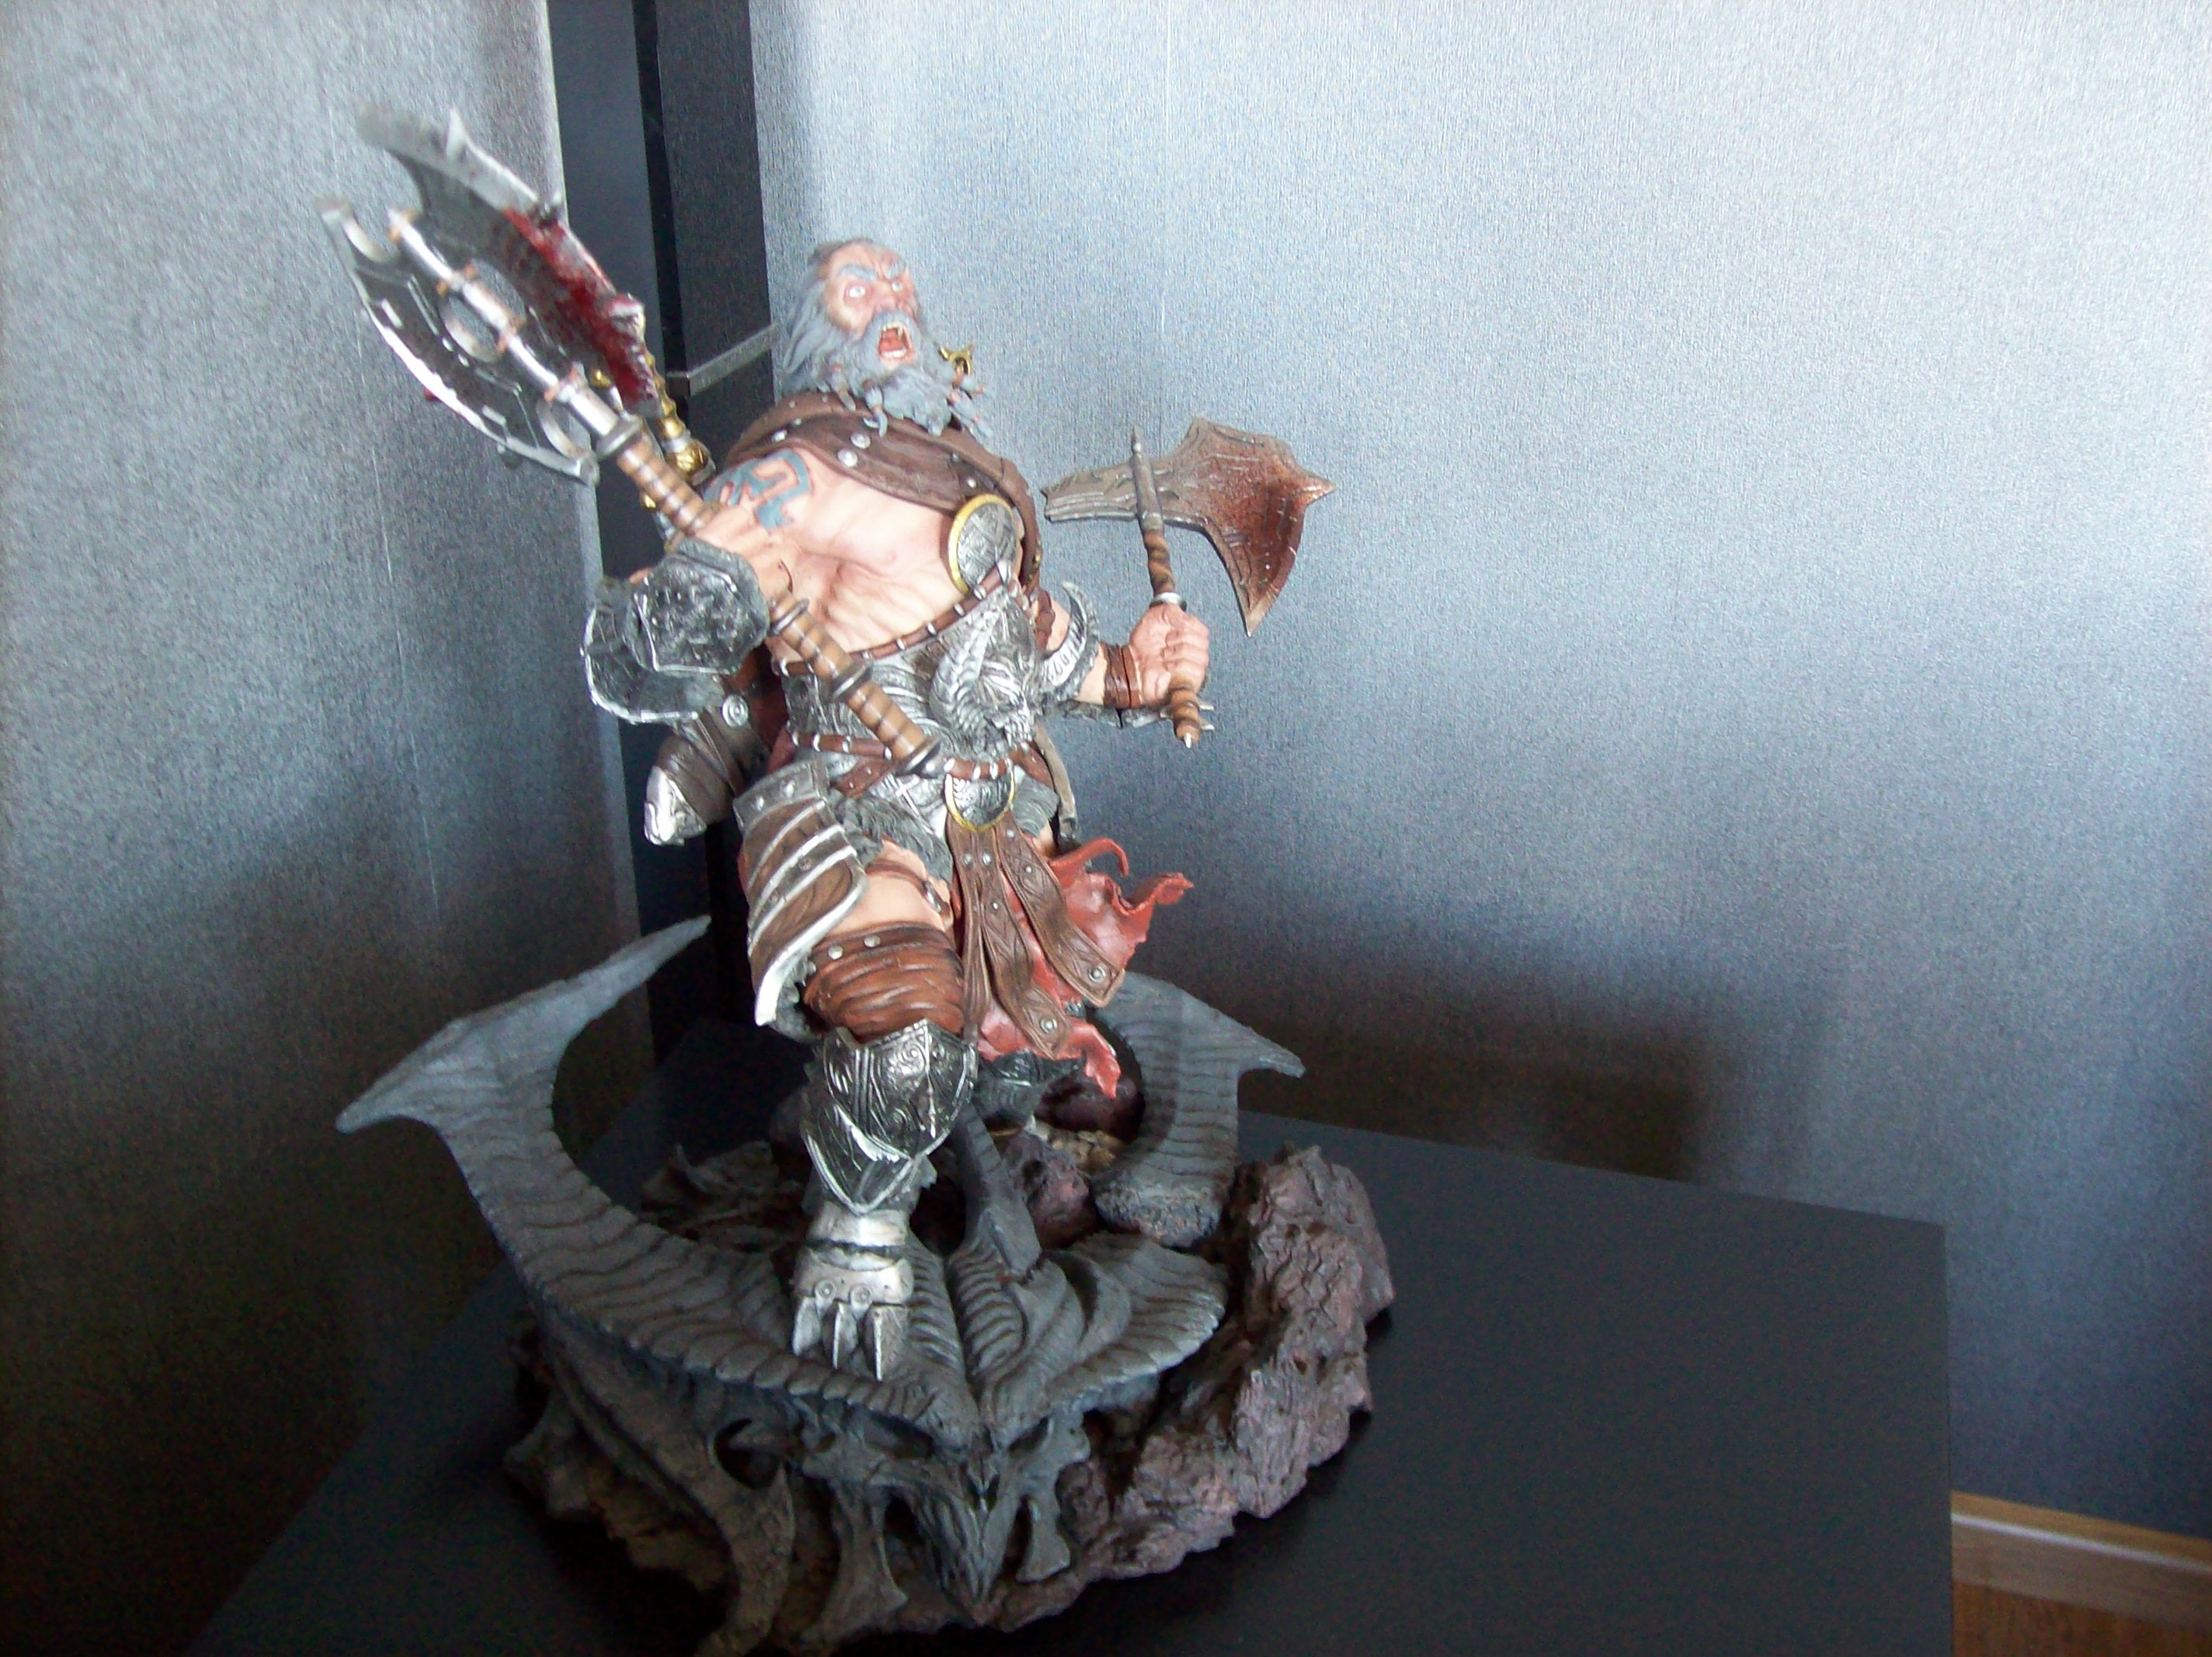 Diablo 3 Sculpture verified: #41: diablo 3 sideshow overthrown statue. | my diablo